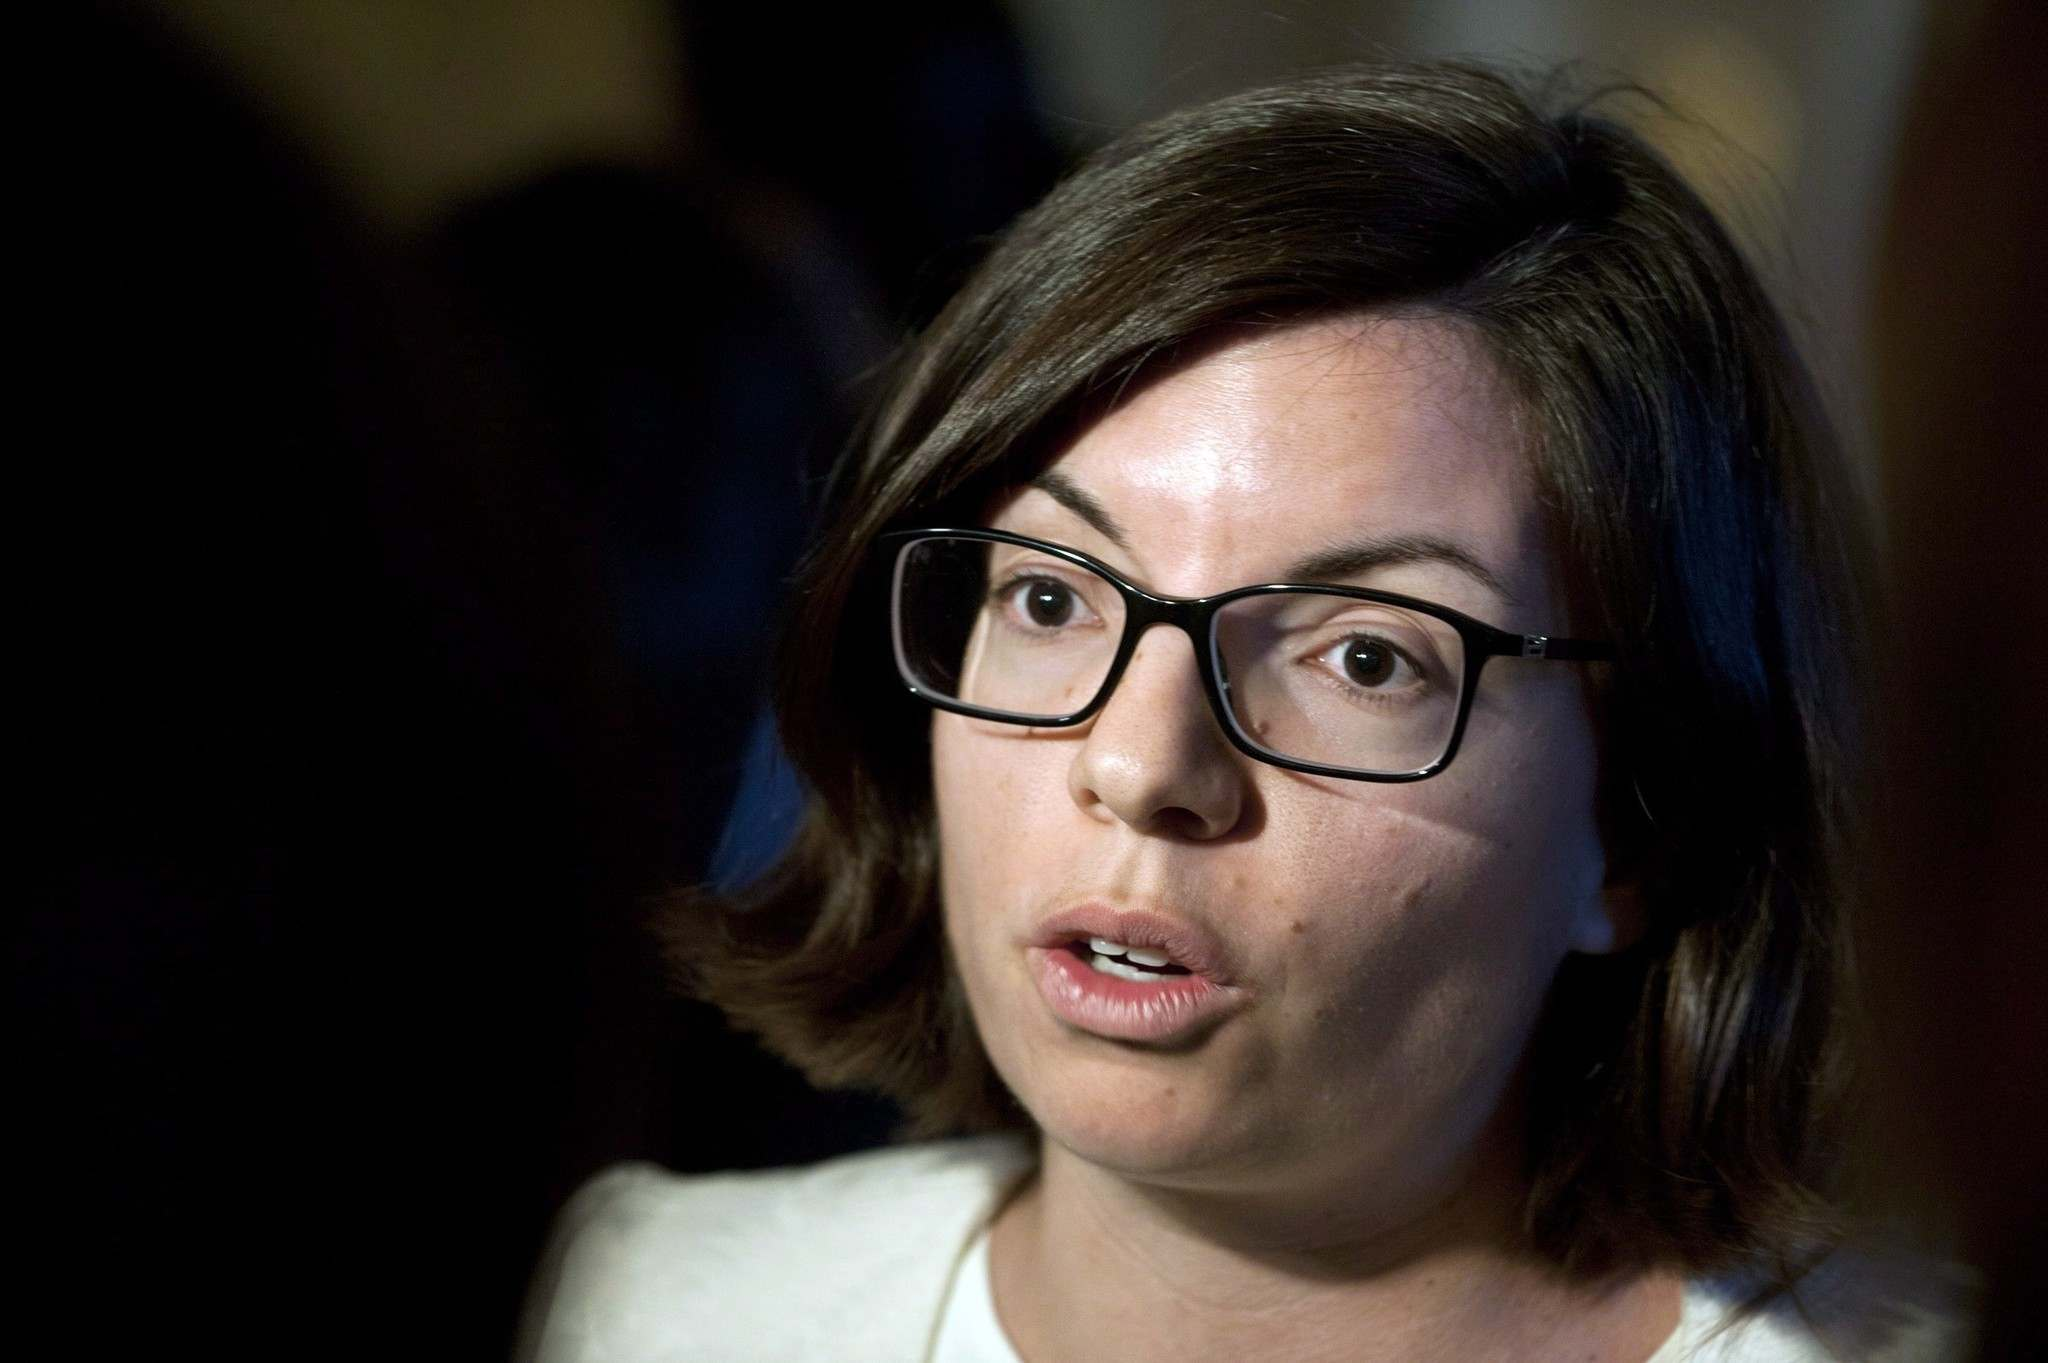 LIAM RICHARDS / CANADIAN PRESS RILES</p><p>NDP MP Niki Ashton didn't specifically say she will vote against him at the upcoming leadership review vote planned for the upcoming NDP convention, but she also didn't say she would vote for him either.</p></p>